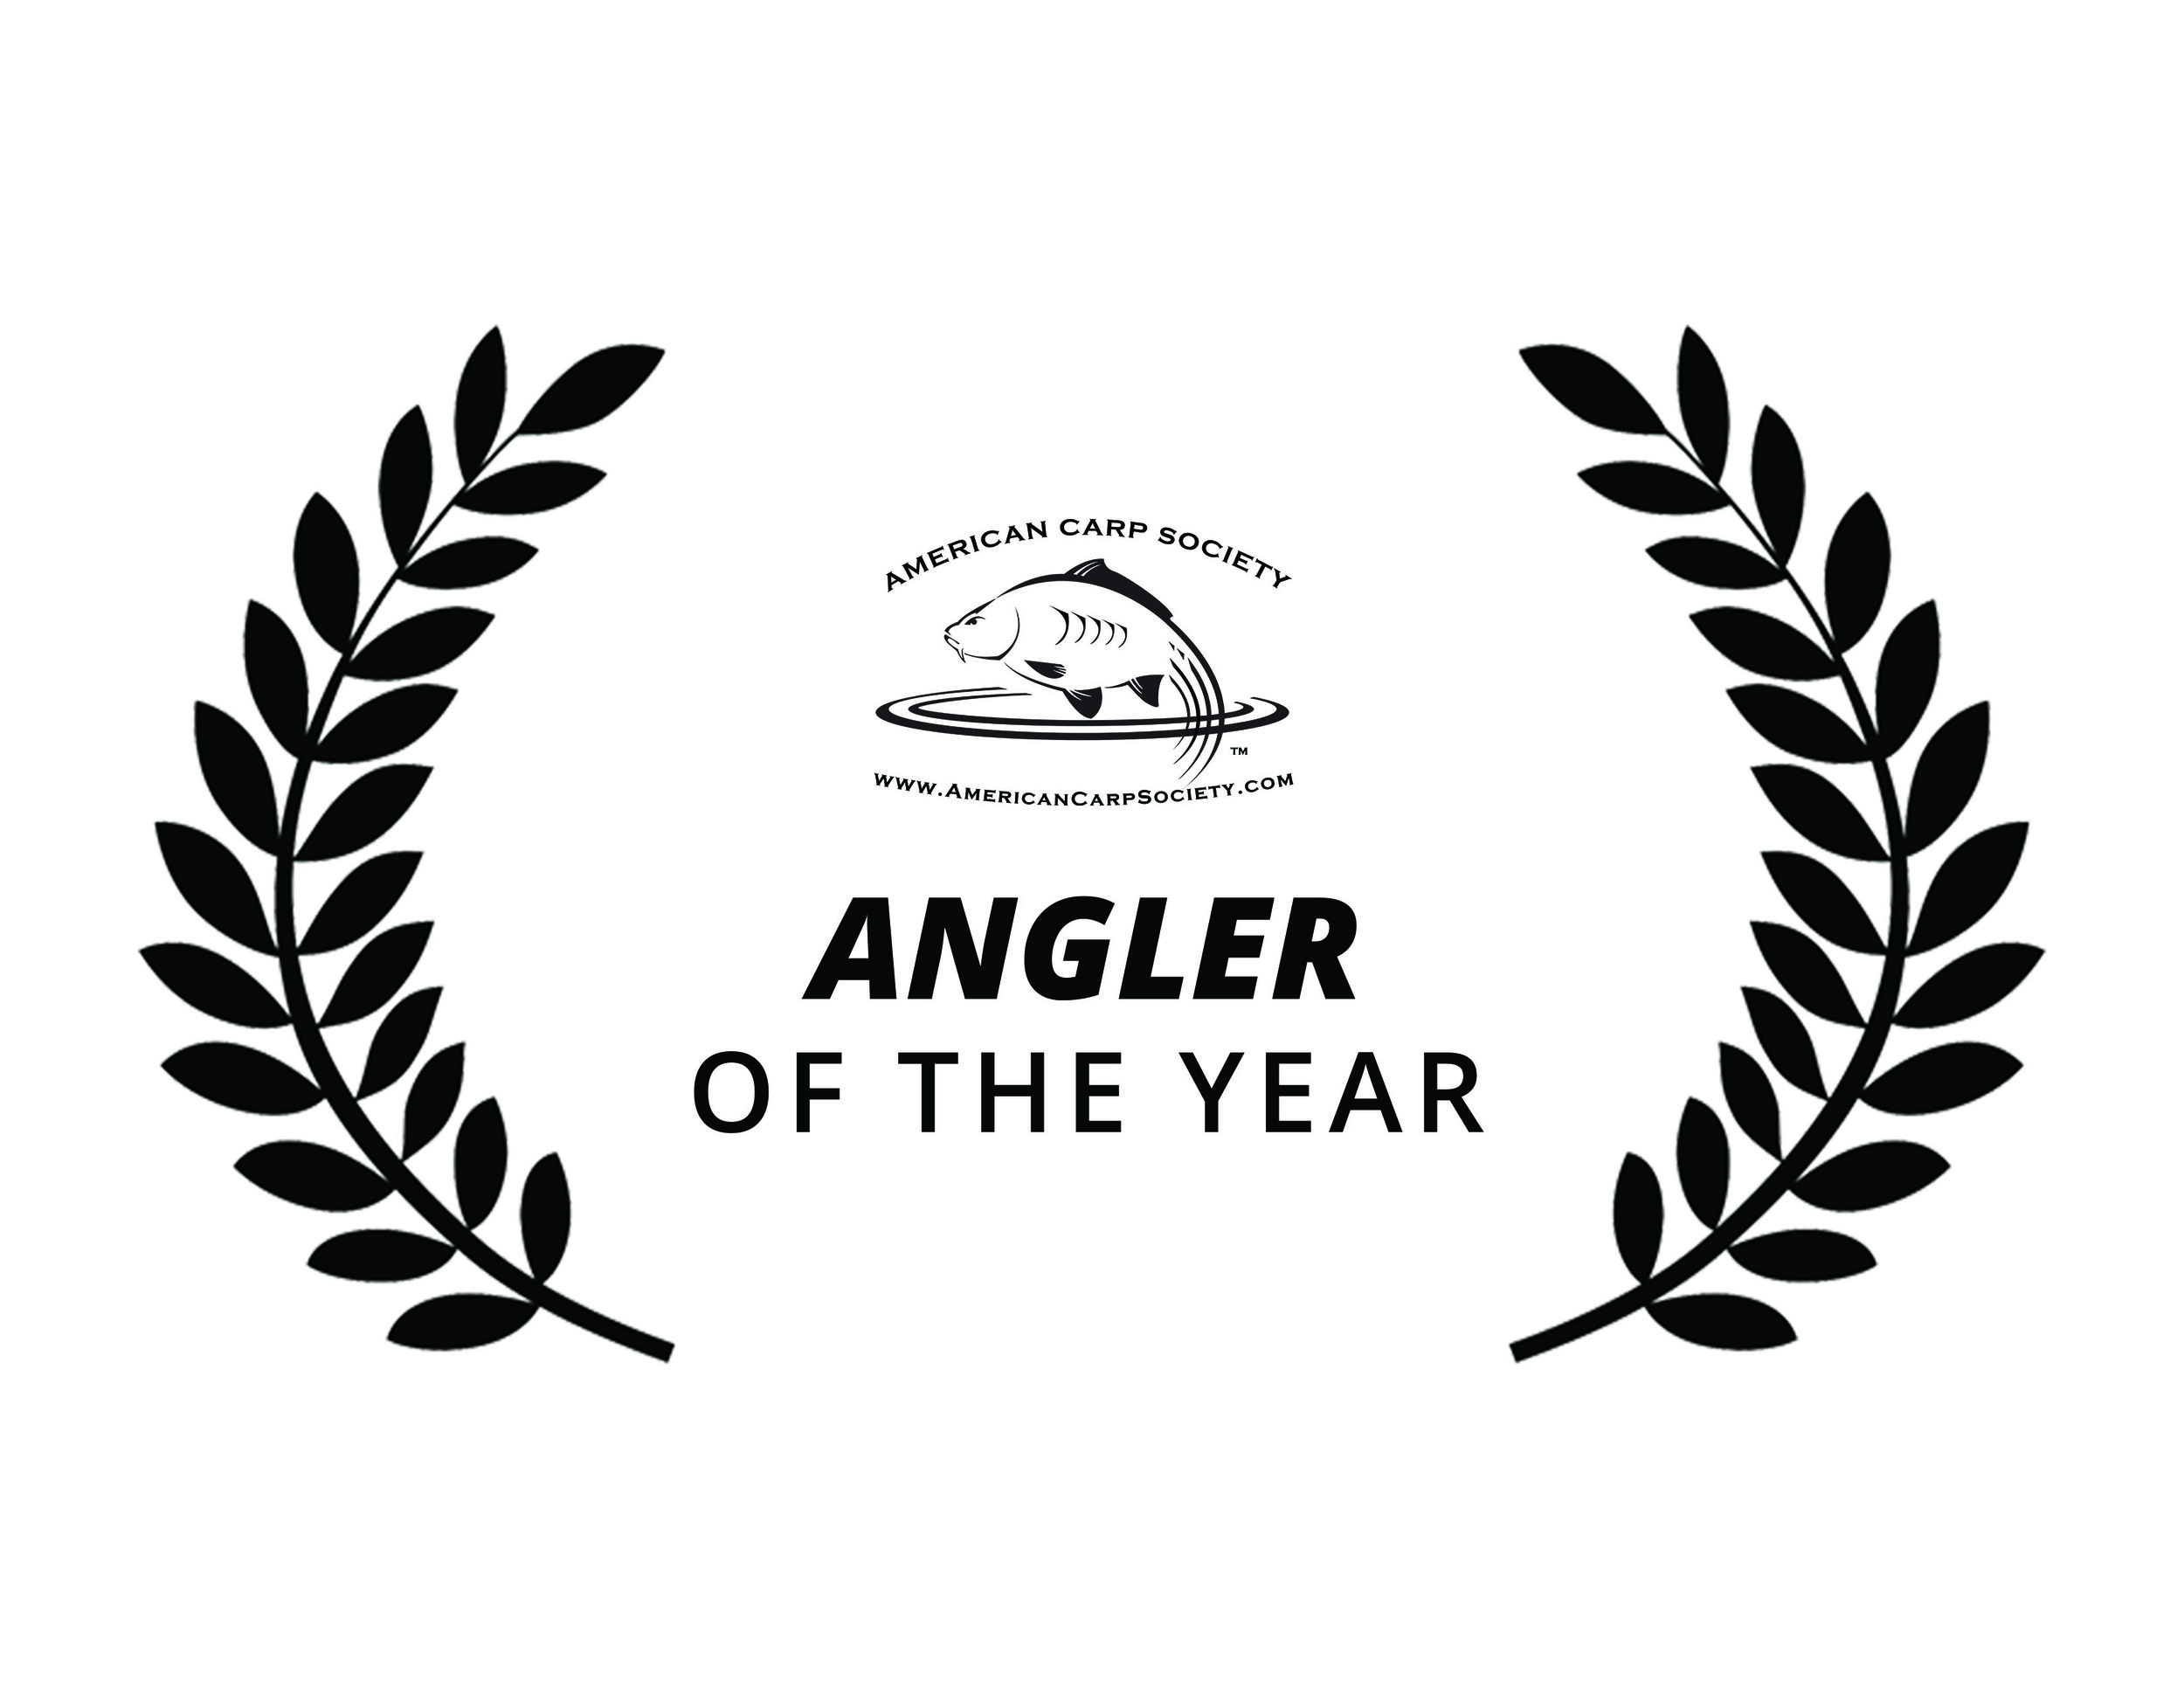 1. Angler of the Year Award - This is not just an award about catching fish. It is voted on by your peers, The American Carp Society membership, and is awarded to the Angler who has given much to the Sport by their actions throughout the year. This will include their education of others new to the sport, their ability to help existing Carp Anglers already established as well as their character representing the sport when bank-side.